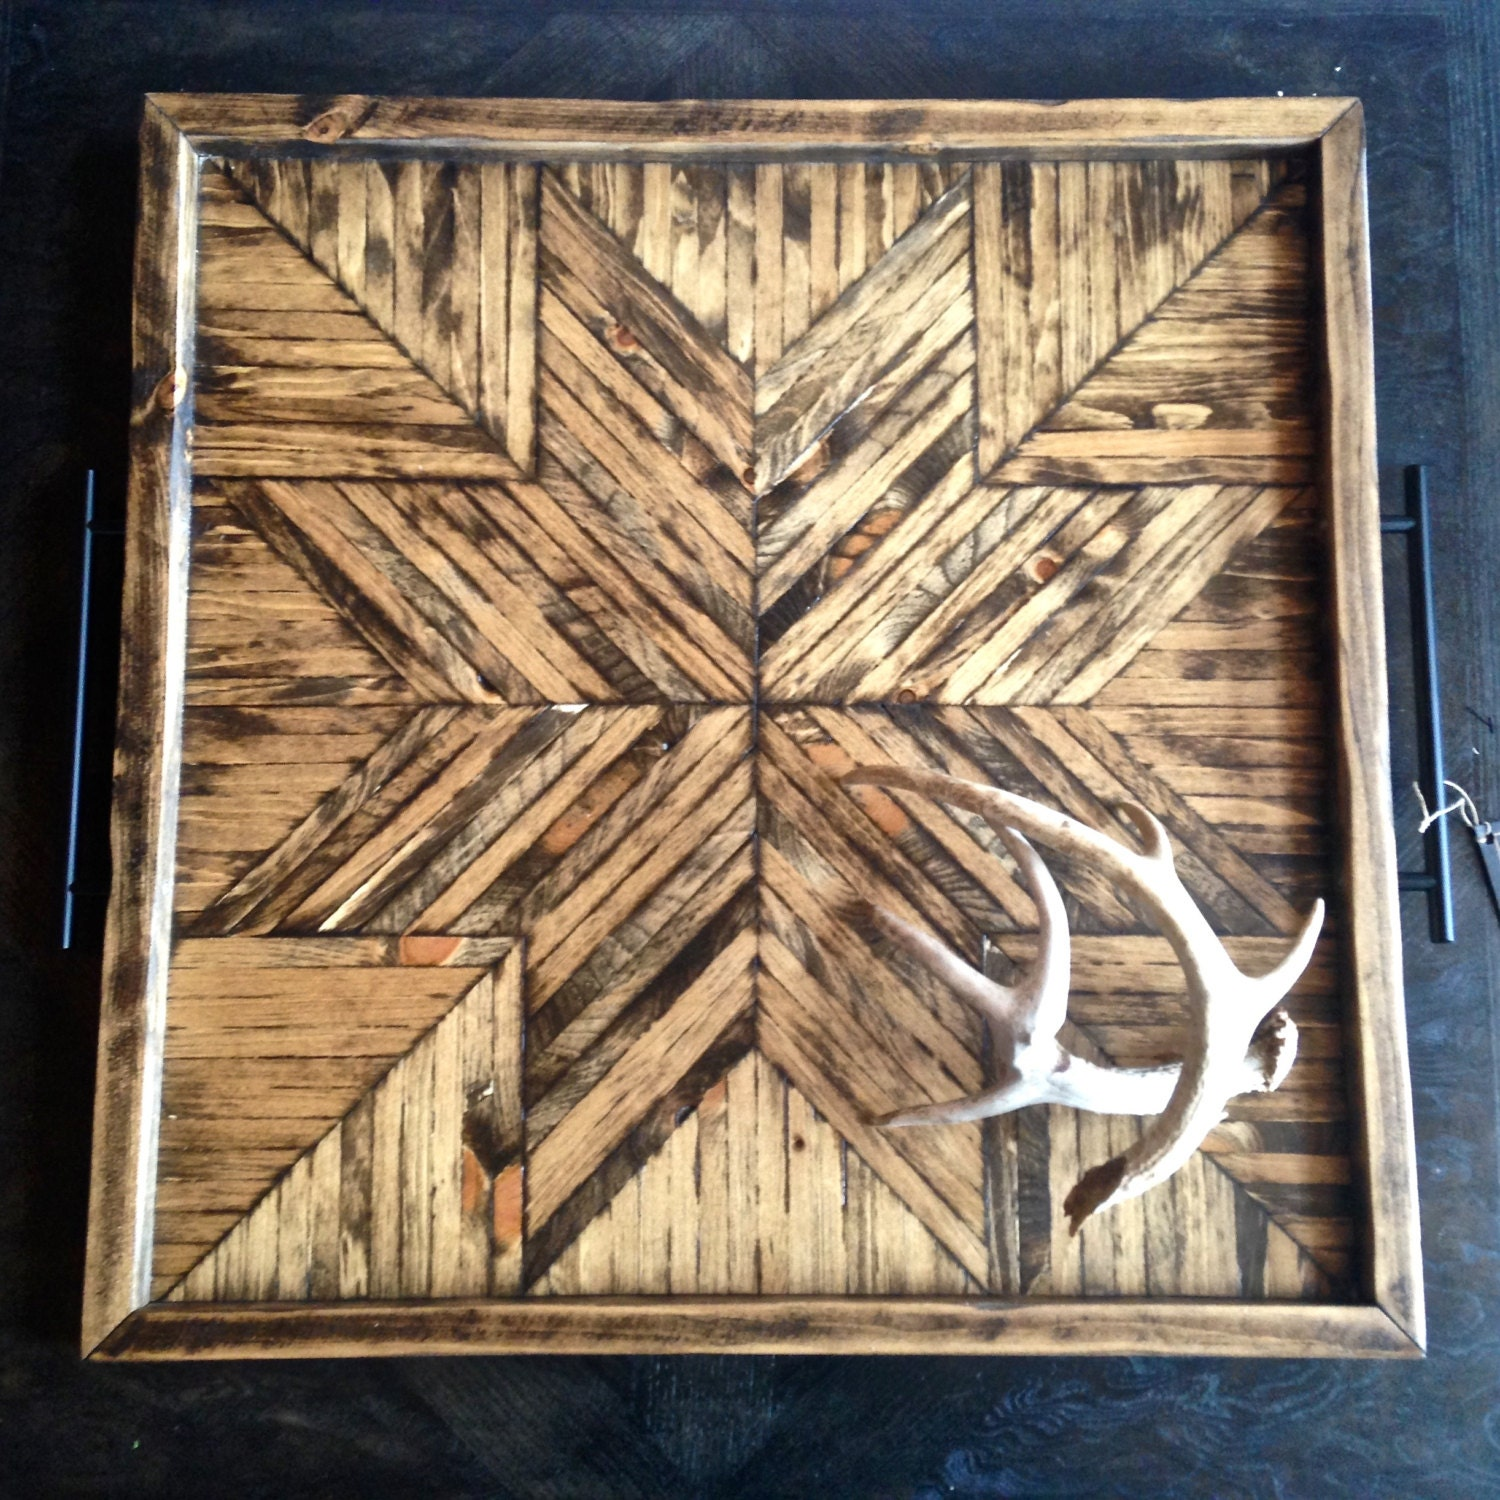 Rustic Wooden Tray Ottoman Tray Home Decor Rustic